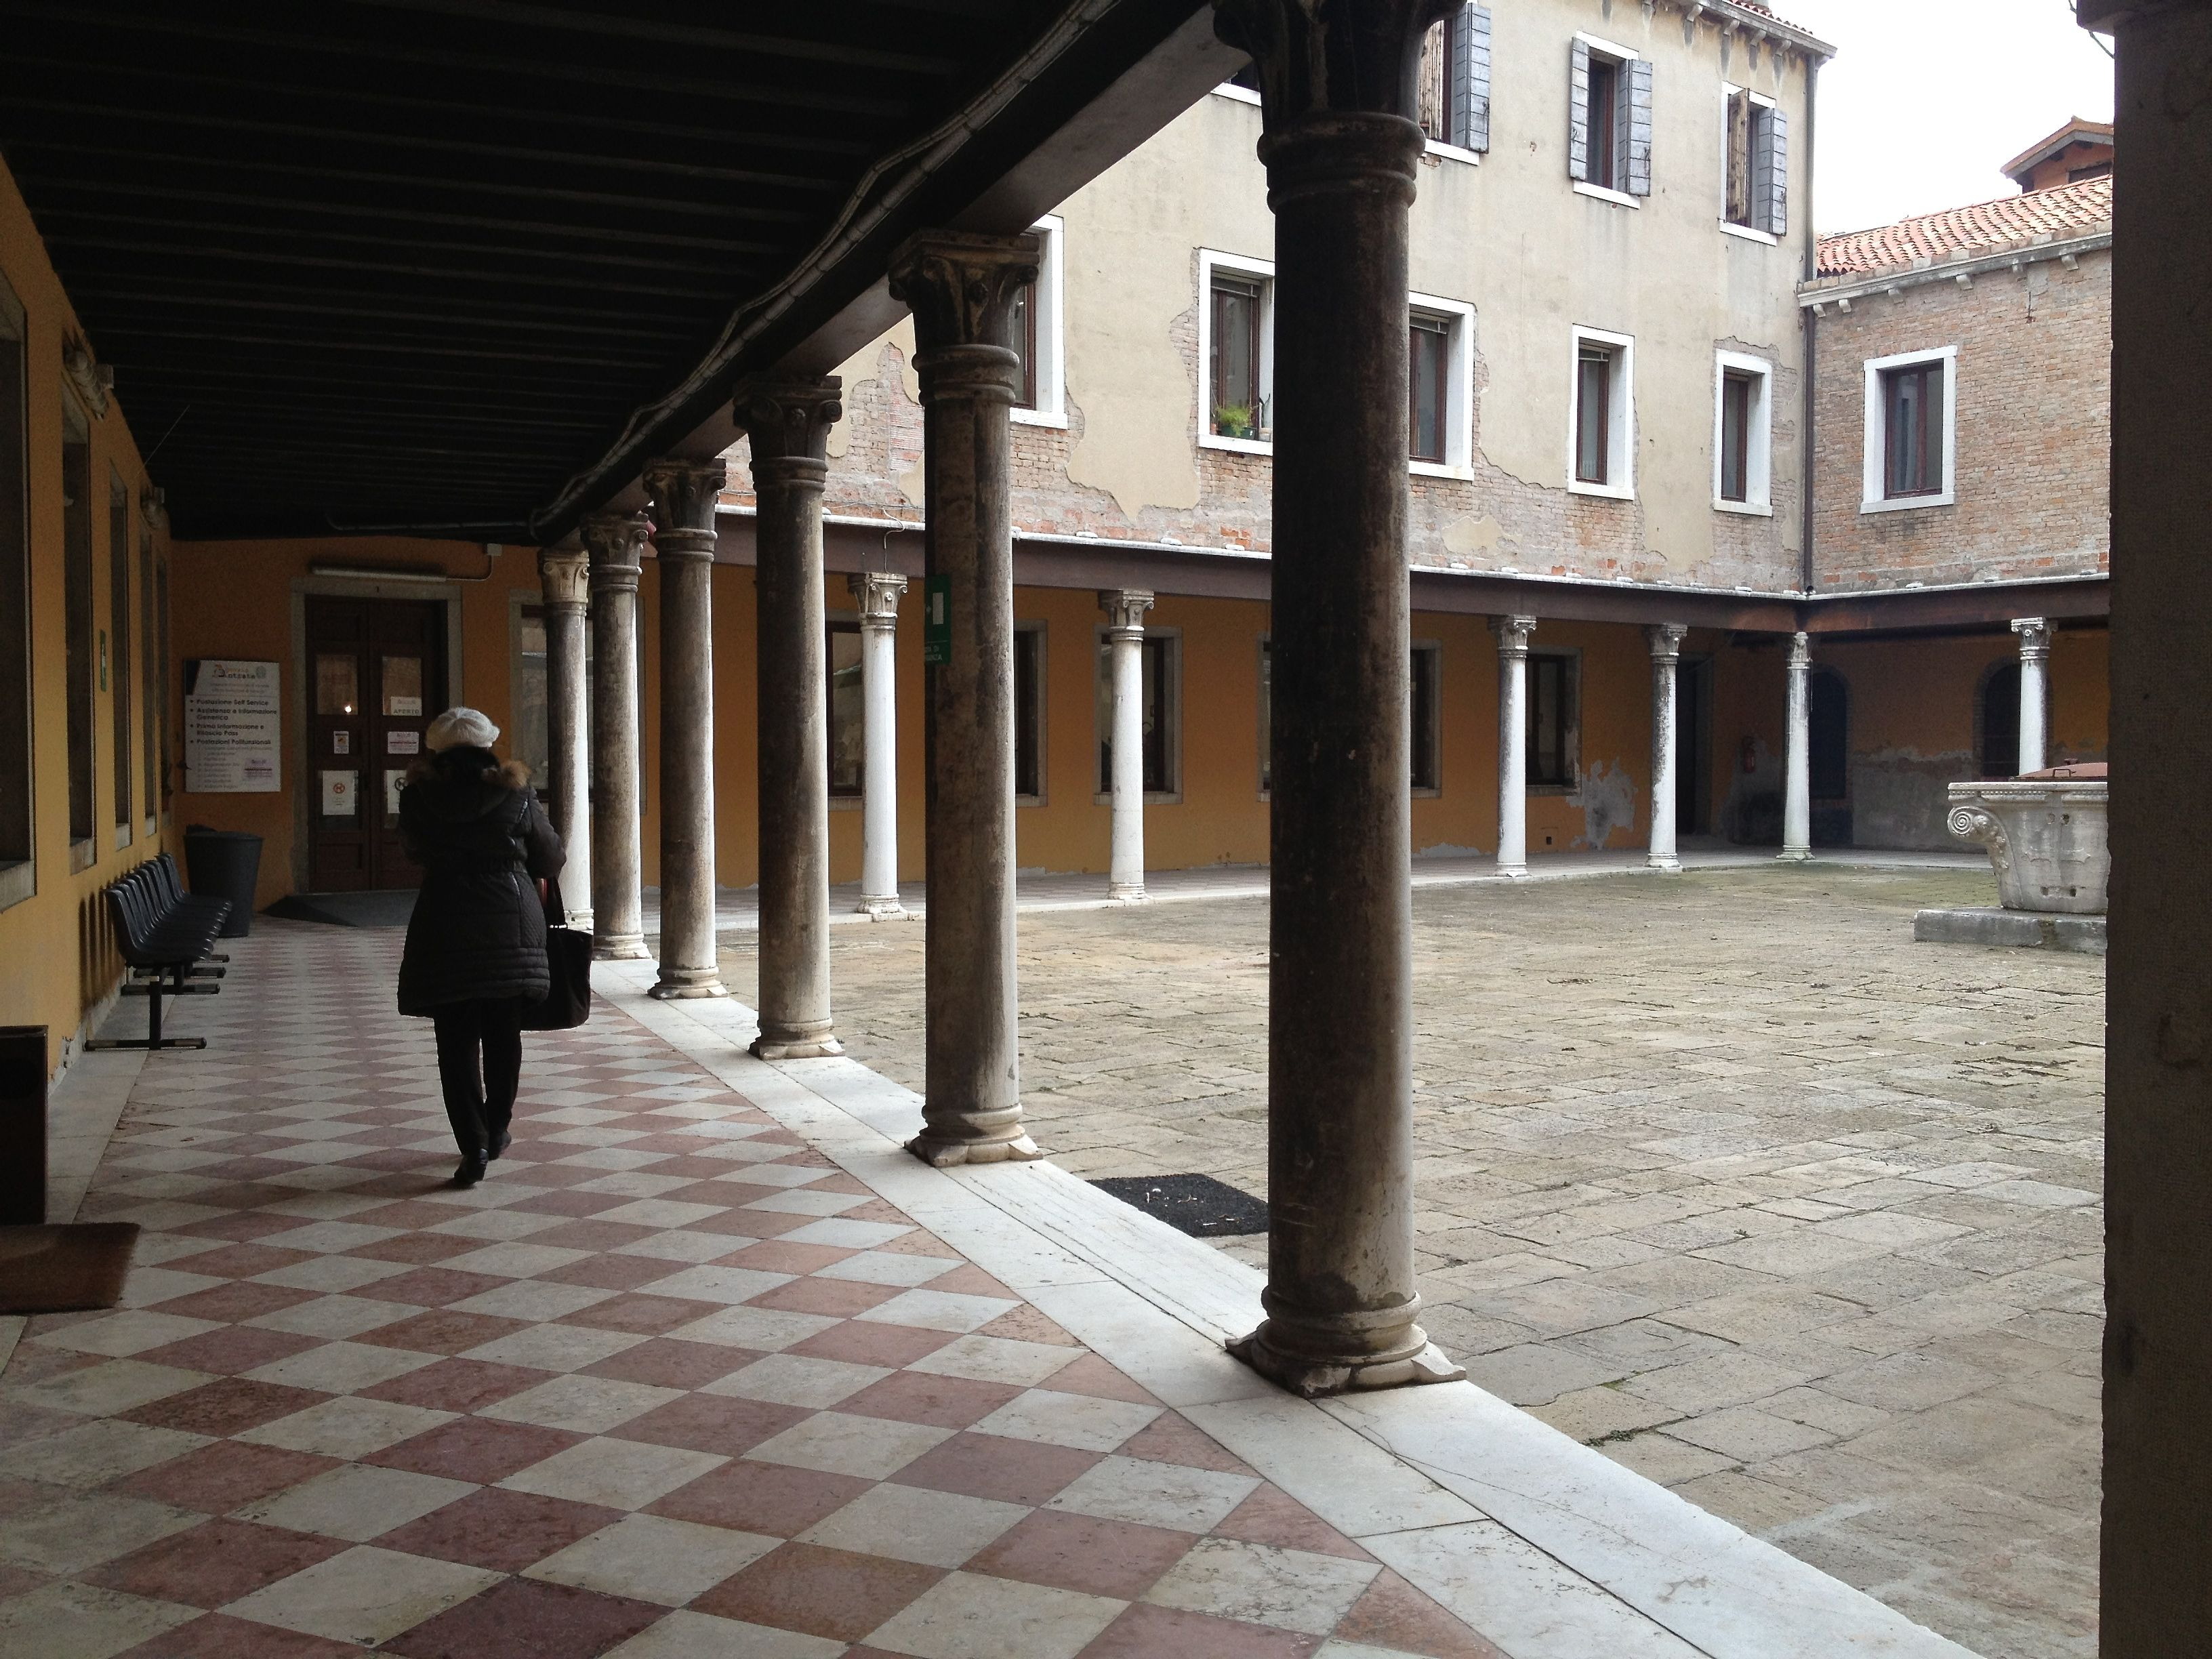 Finding the offices of the Agenzia delle Entrate